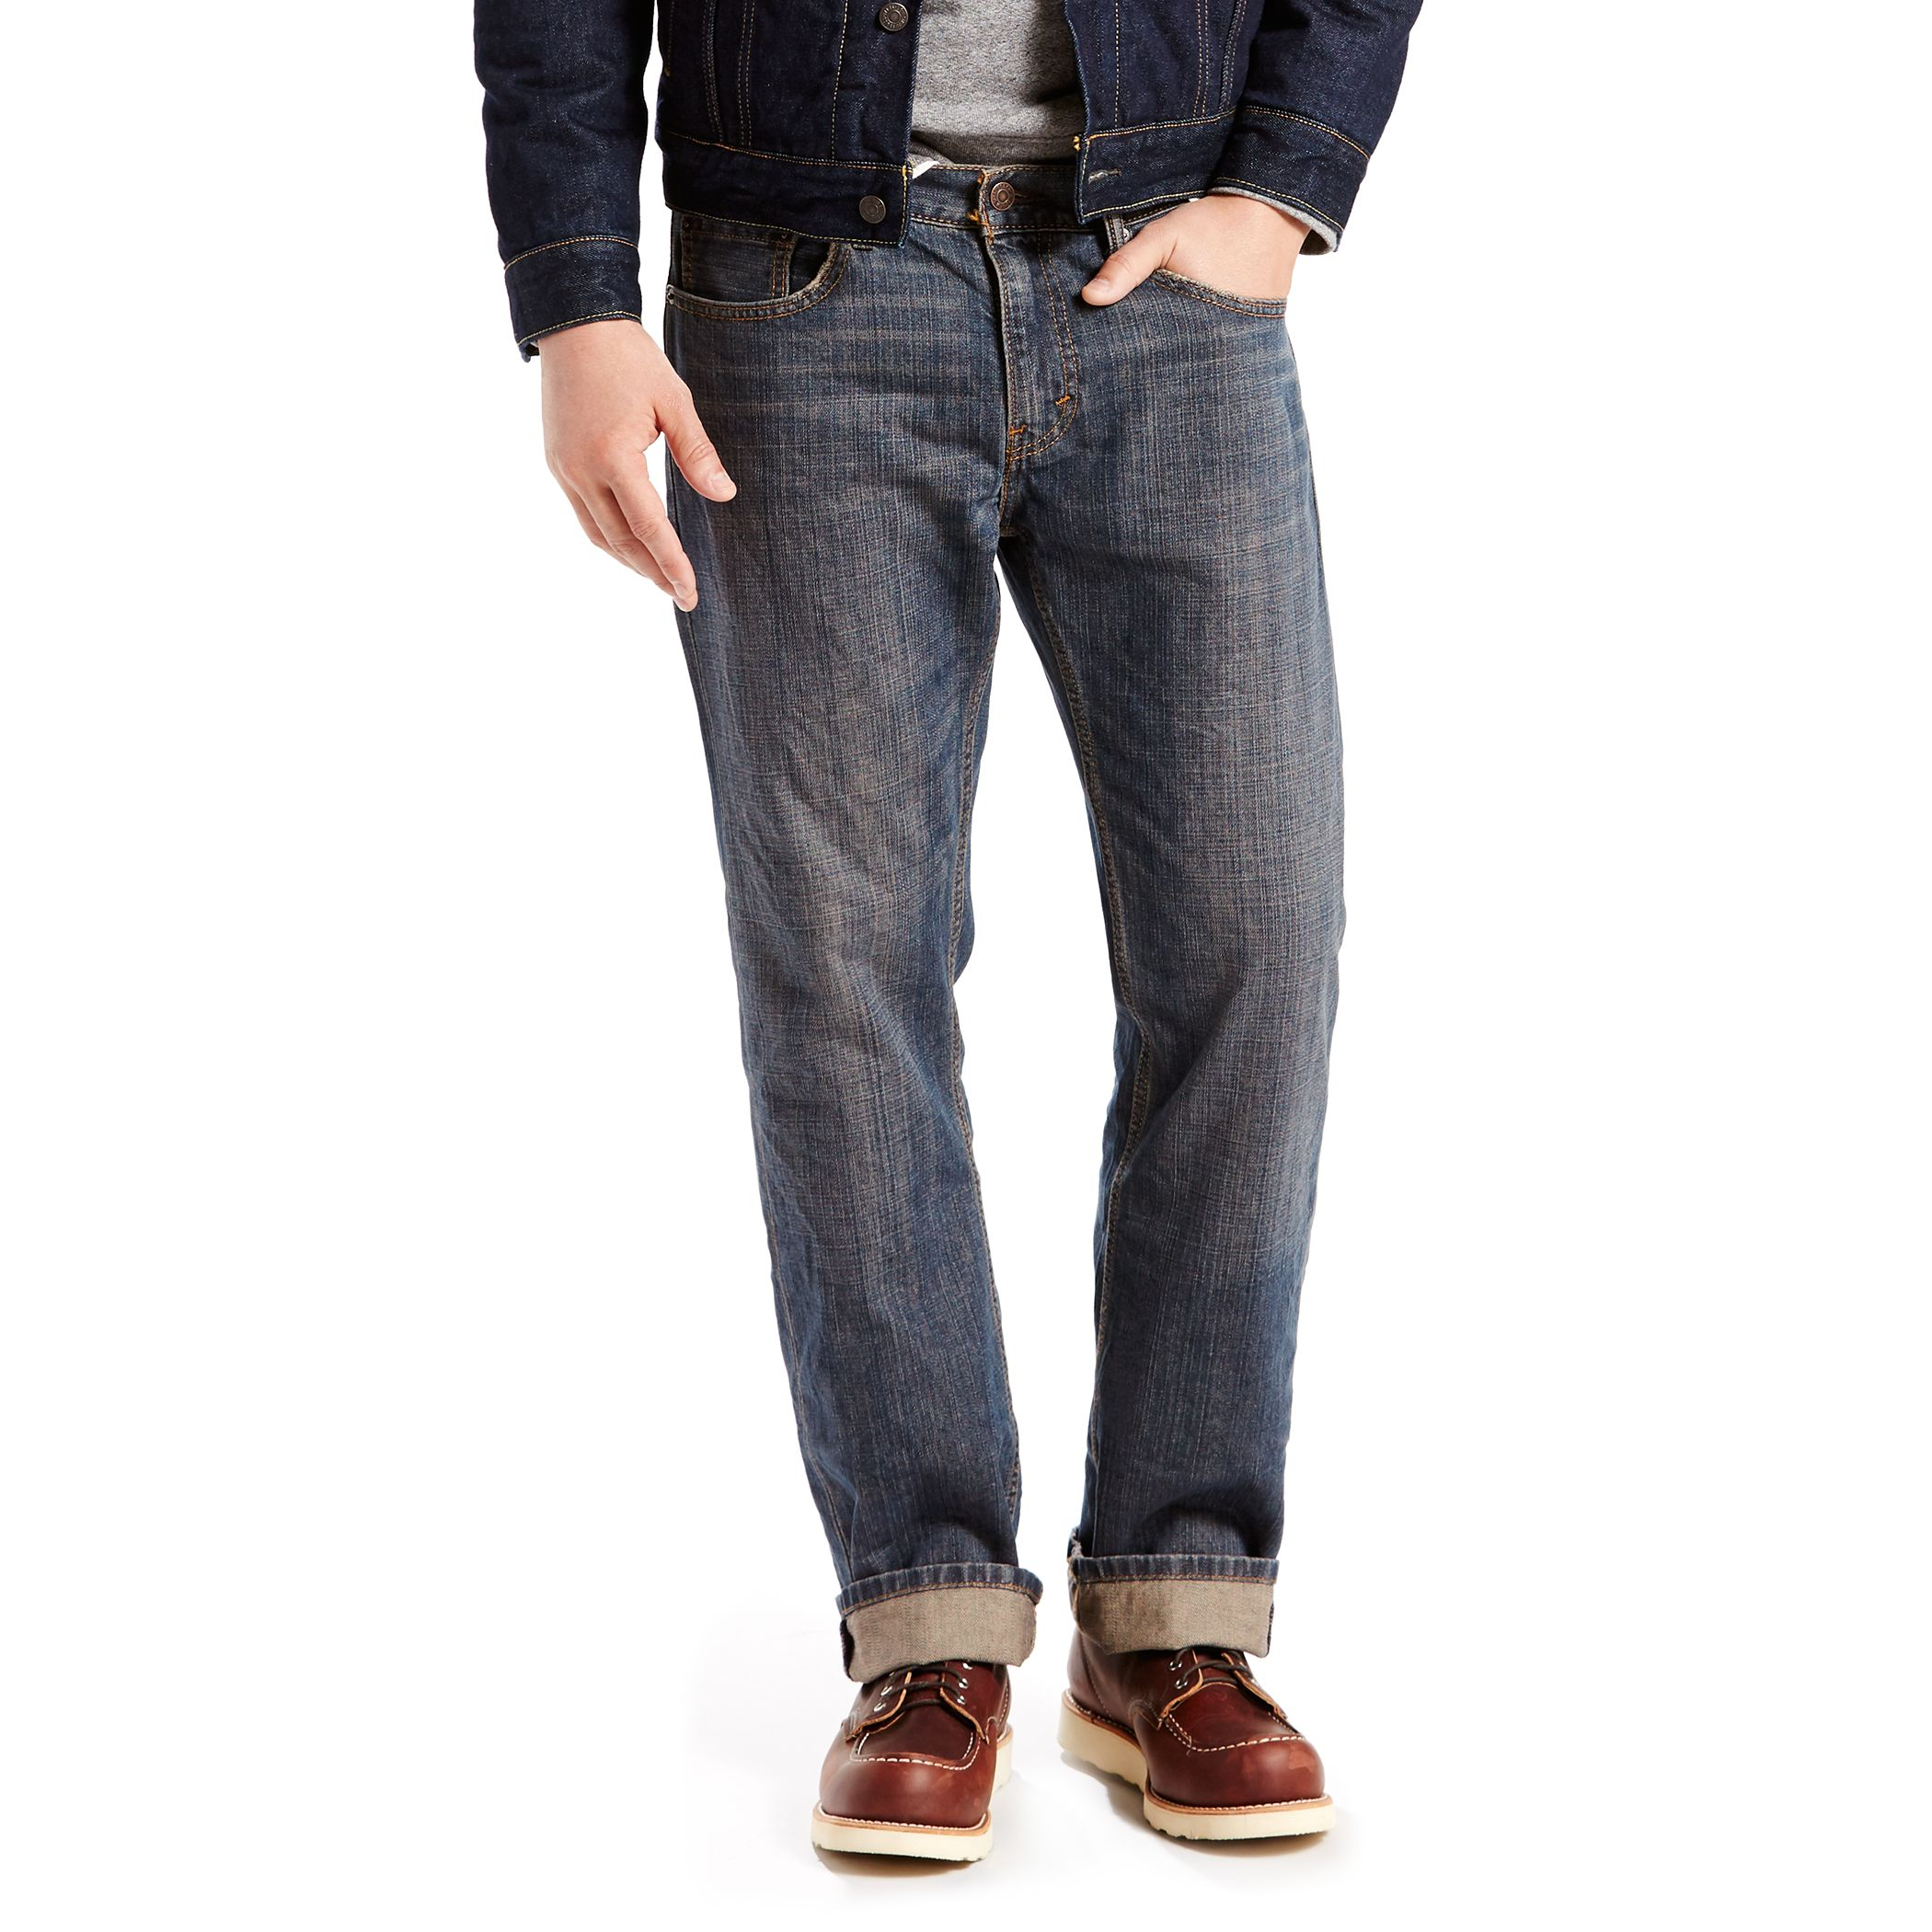 Big Amp Tall Levis 559 Relaxed Straight Fit Jeans